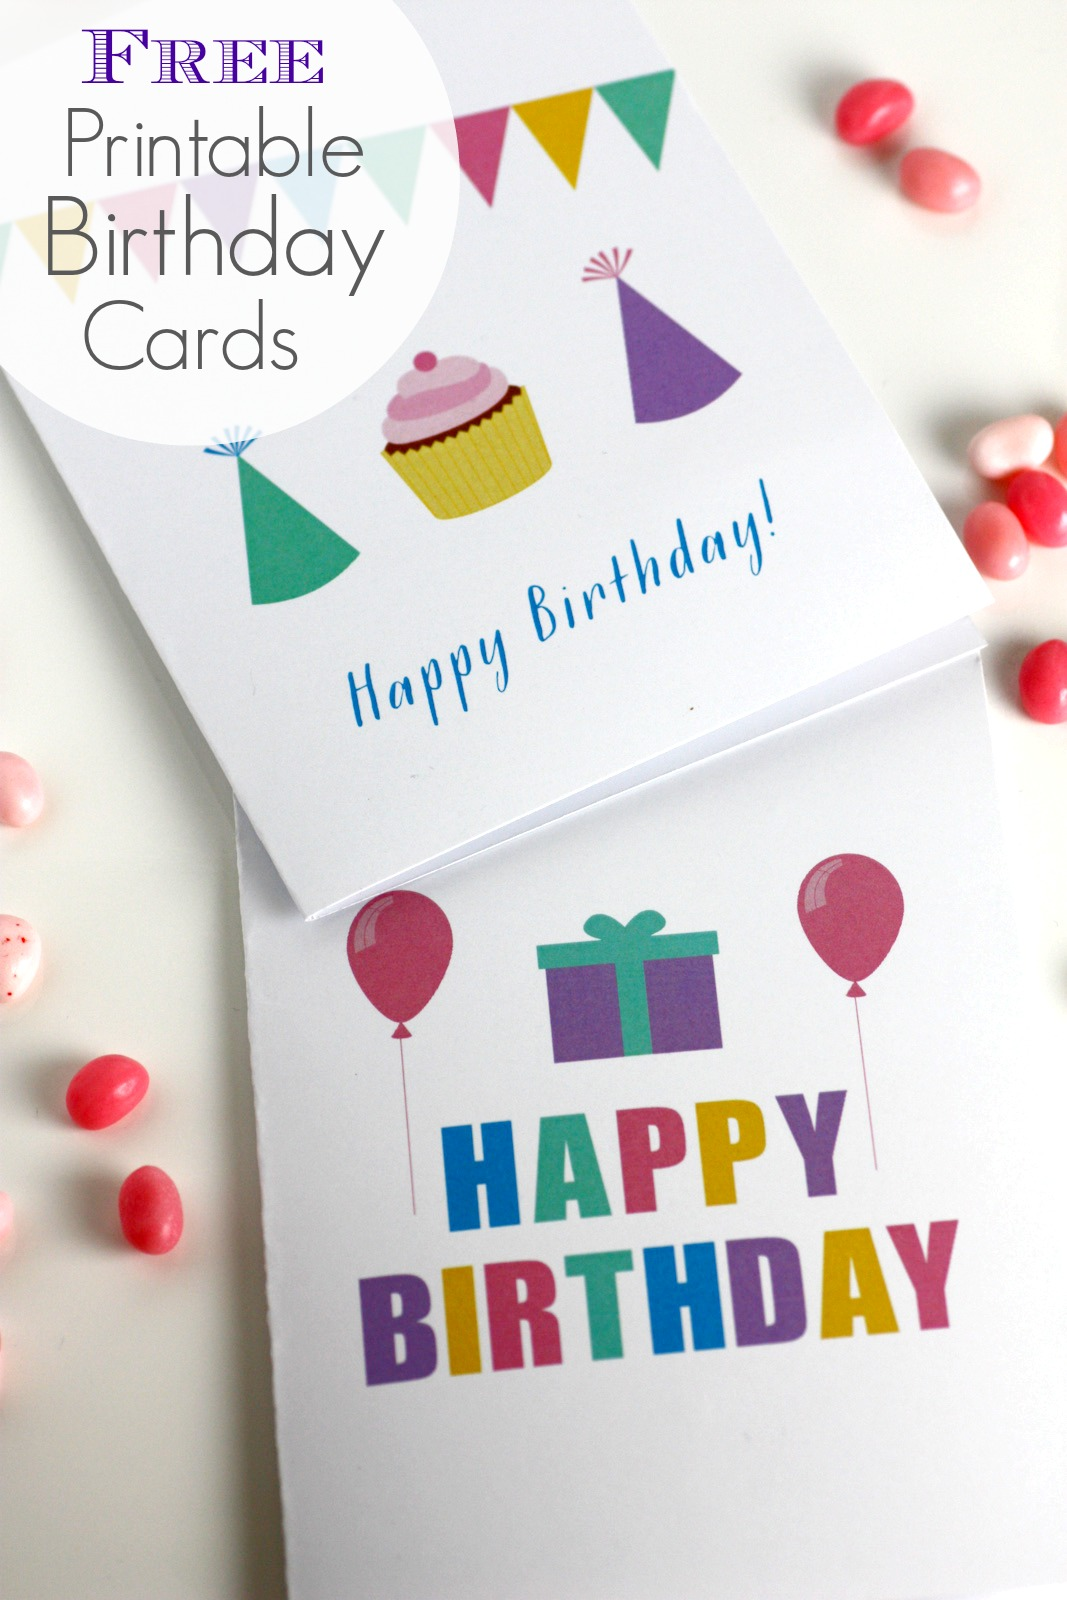 Free Printable Blank Birthday Cards – Birthday Cards to Print out for Free